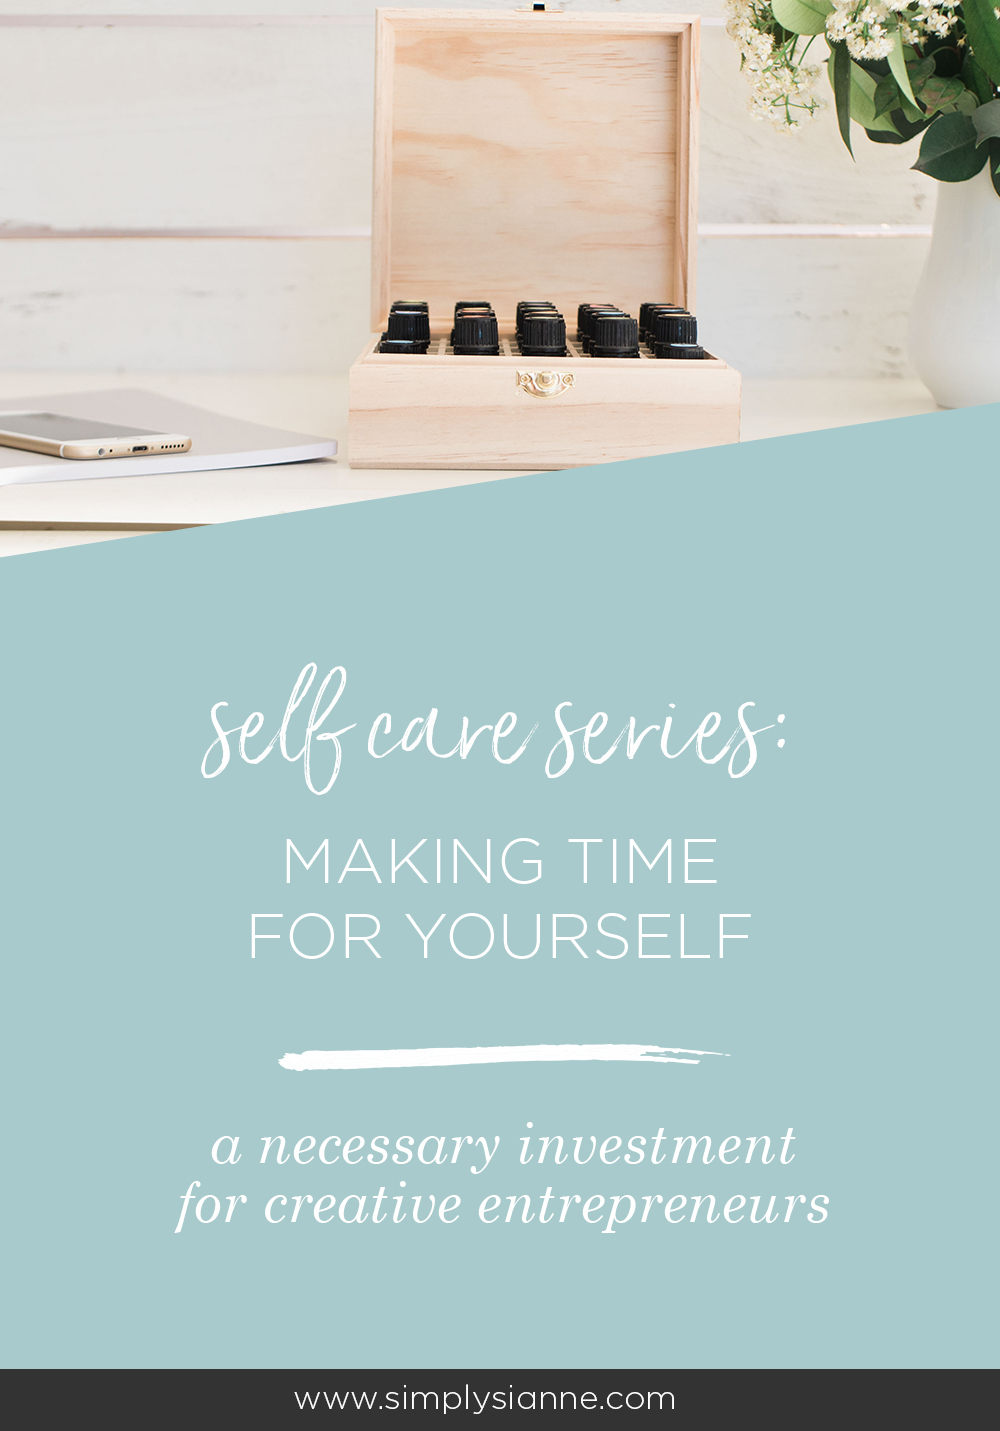 You can't pour from an empty cup - you have to take care of yourself first. We're sharing 3 self-care tips you should be doing as a millennial entrepreneur.